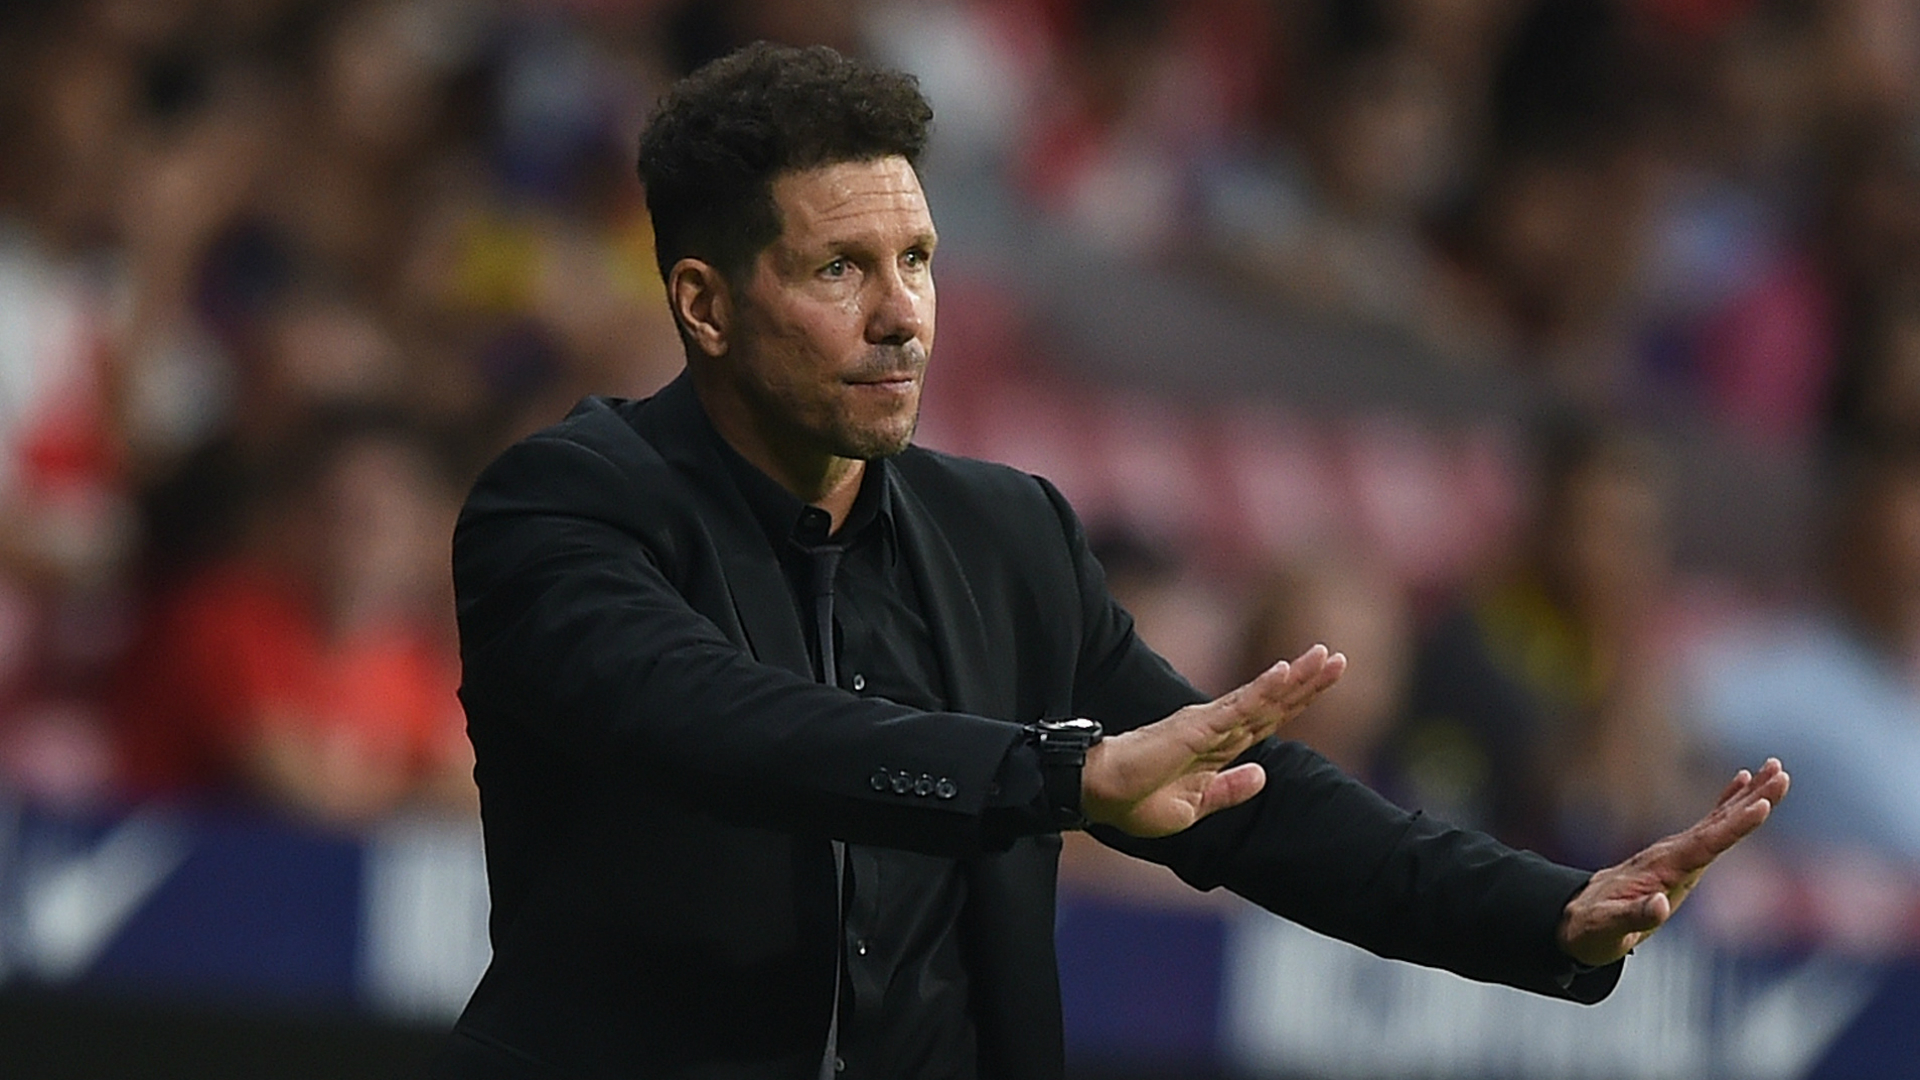 Simeone Makes Strange Claim on Real Madrid WITHOUT Ronaldo